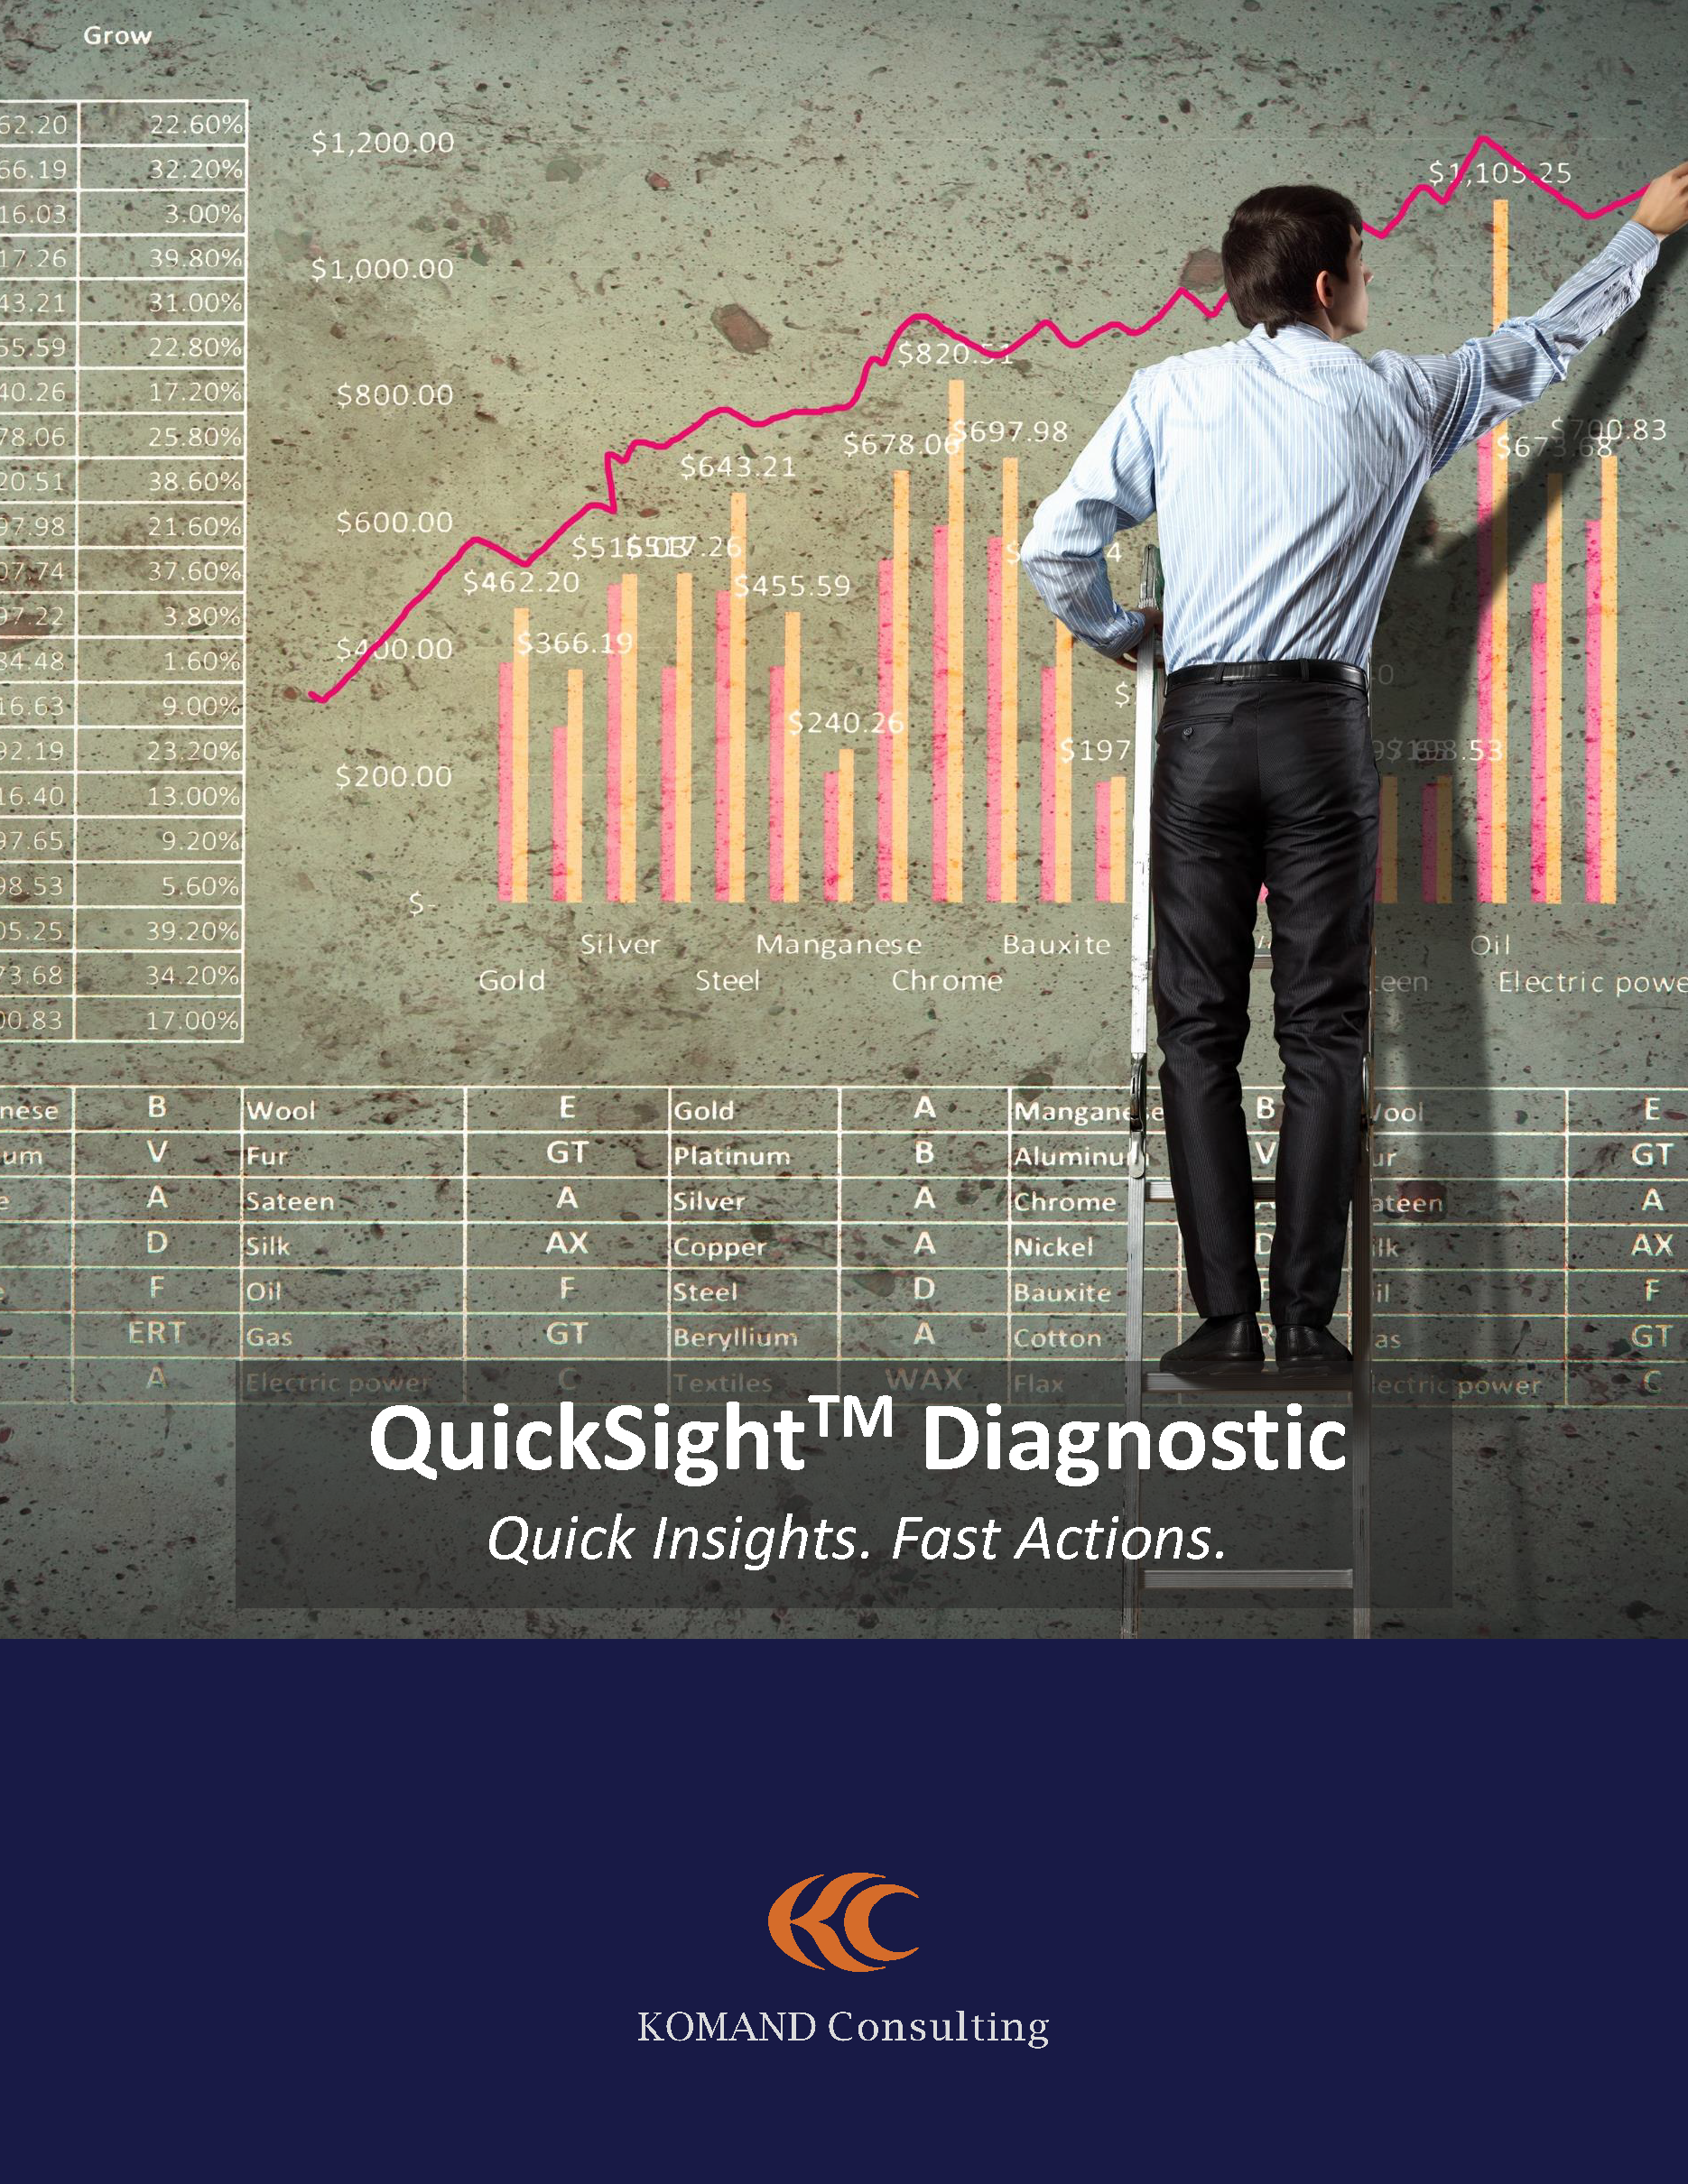 KOMAND - QuickSight Diagnostic - Read More